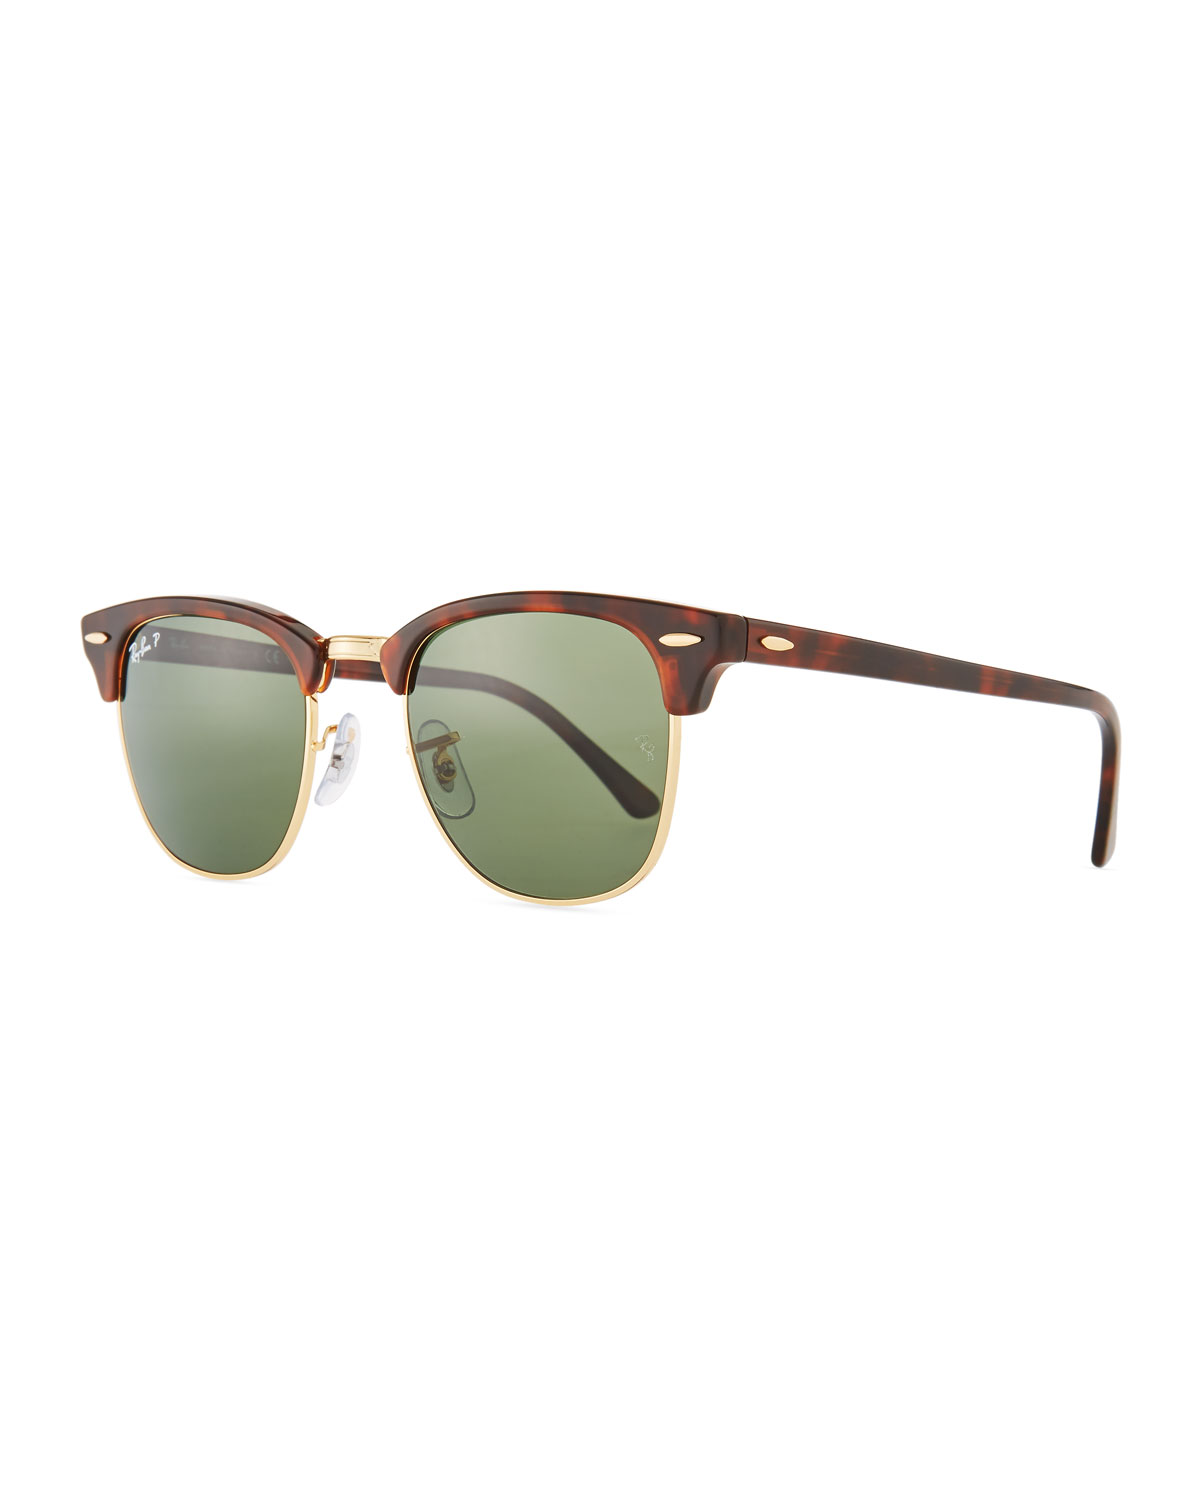 20fcc2aaae Ray-Ban Men s Classic Clubmaster Polarized Half-Rim Sunglasses ...